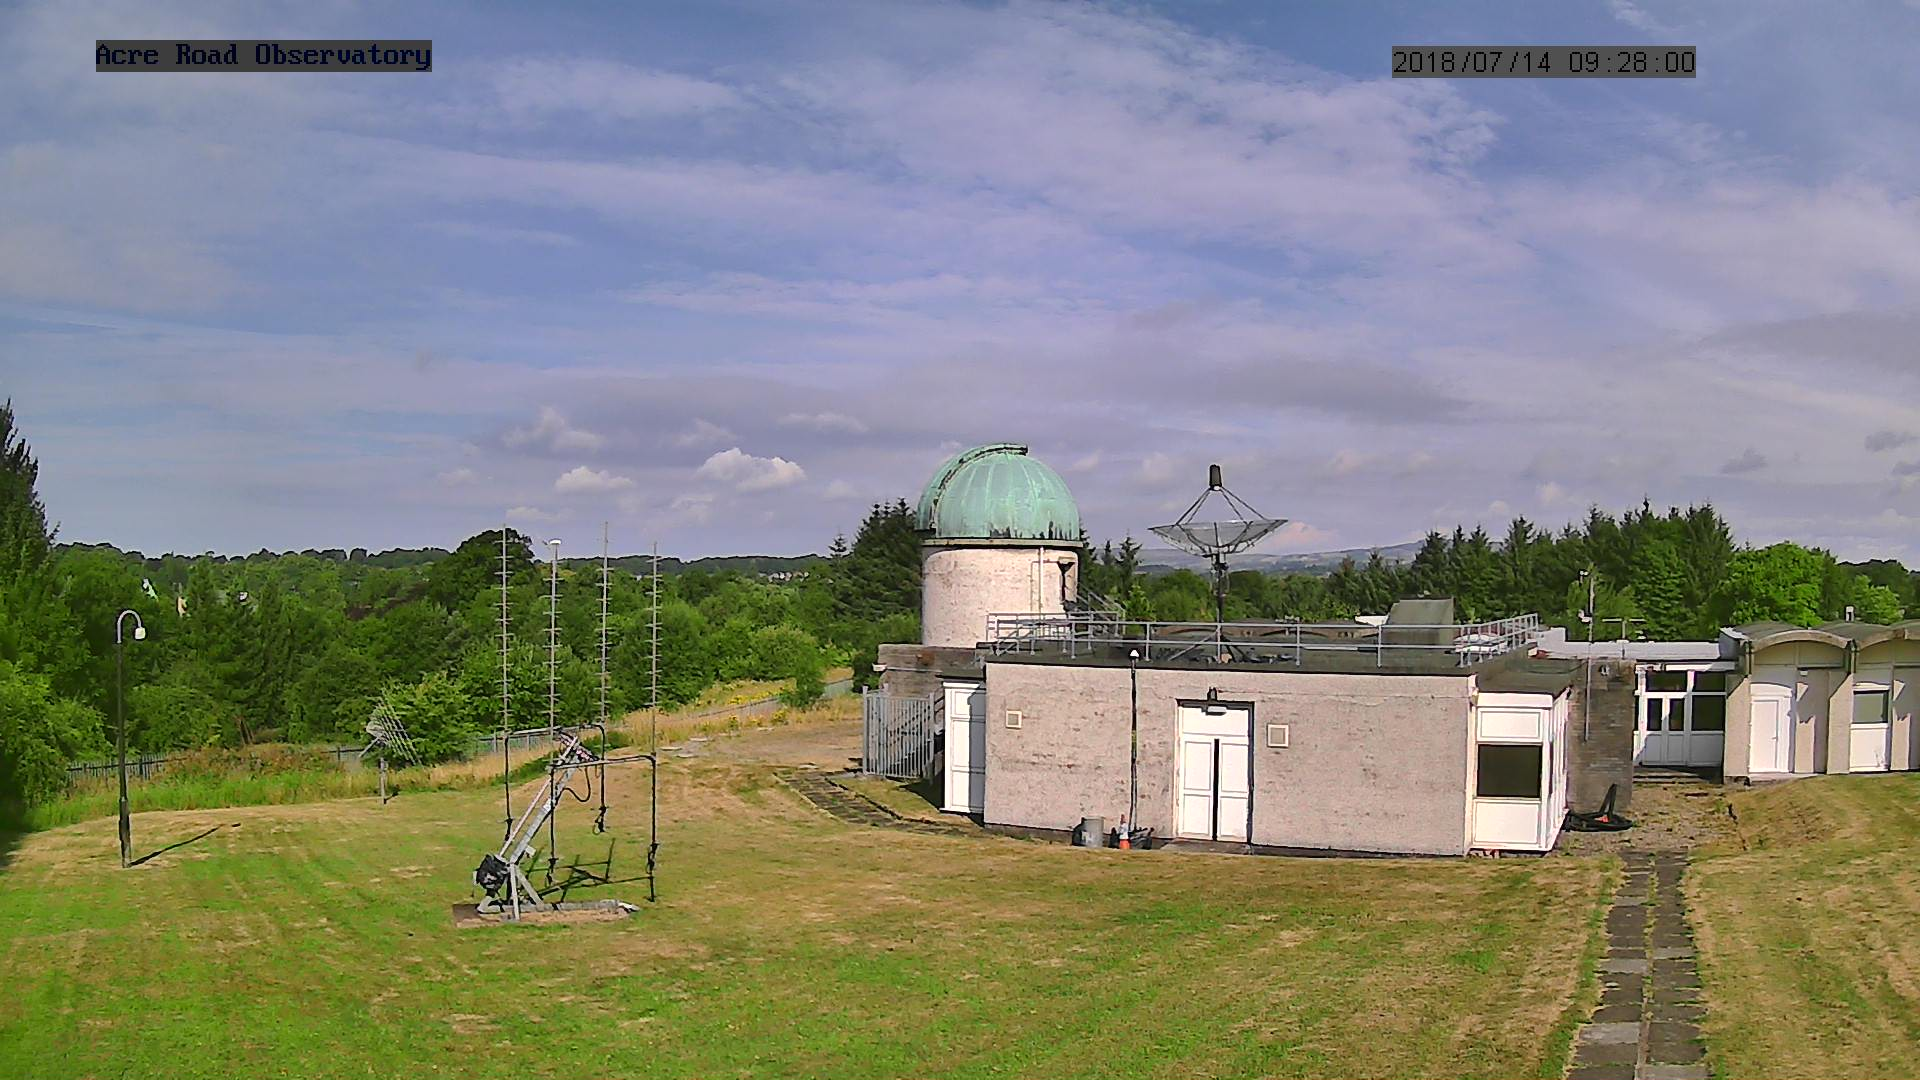 Glasgow Observatory, Scotland - Webcam Image